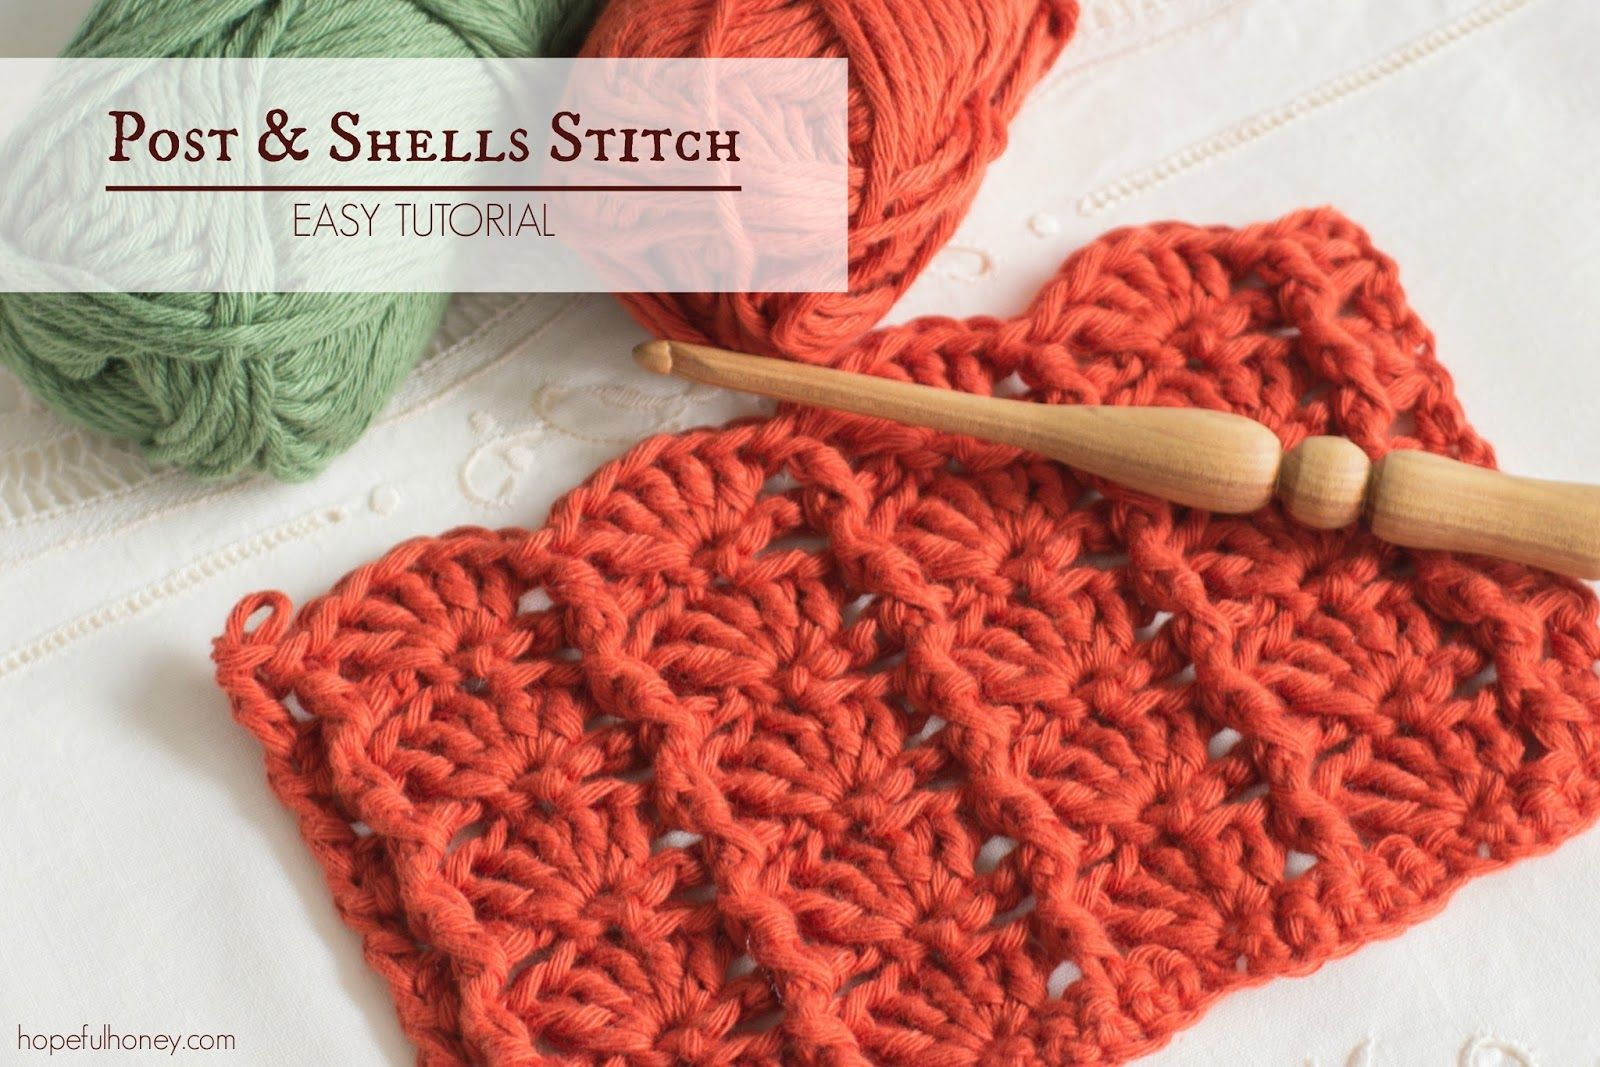 How To: Crochet The Post and Shells Stitch - Easy Tutorial | Häkeln ...